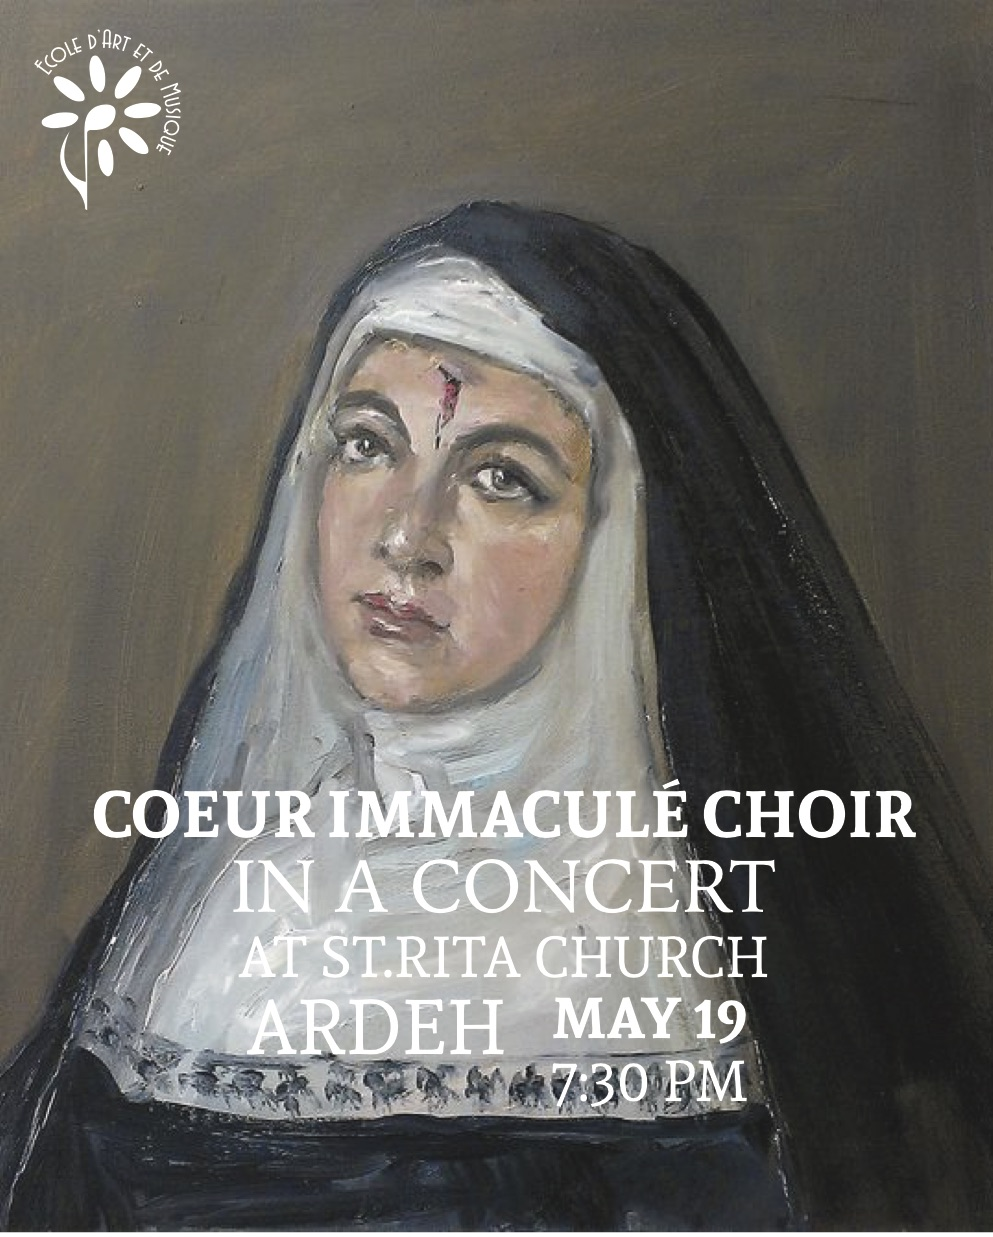 COEUR IMMACULÉ CHOIR